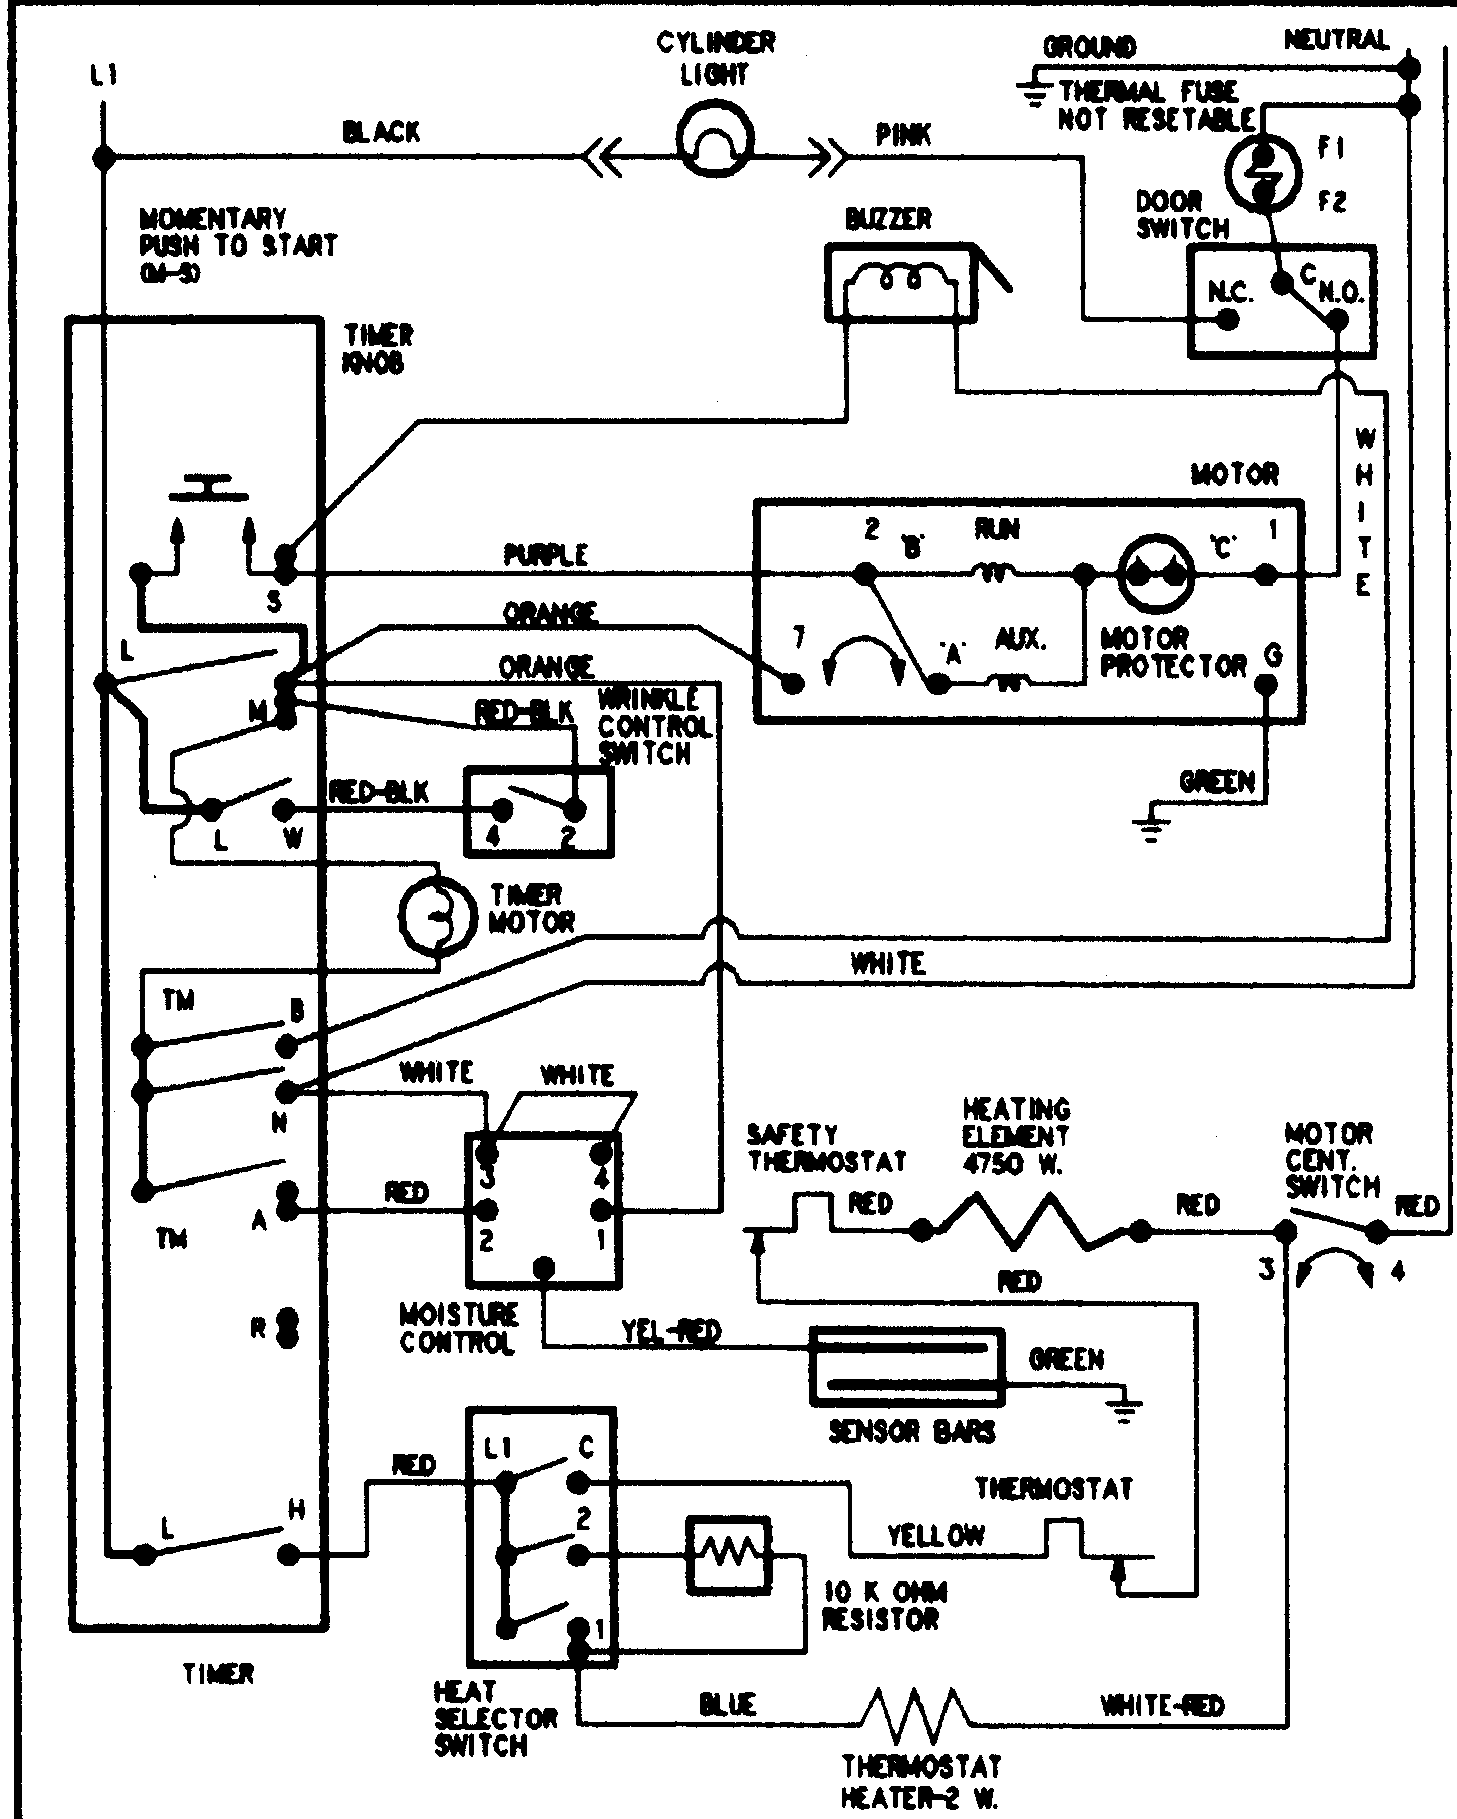 wiring diagram for crosley dryer